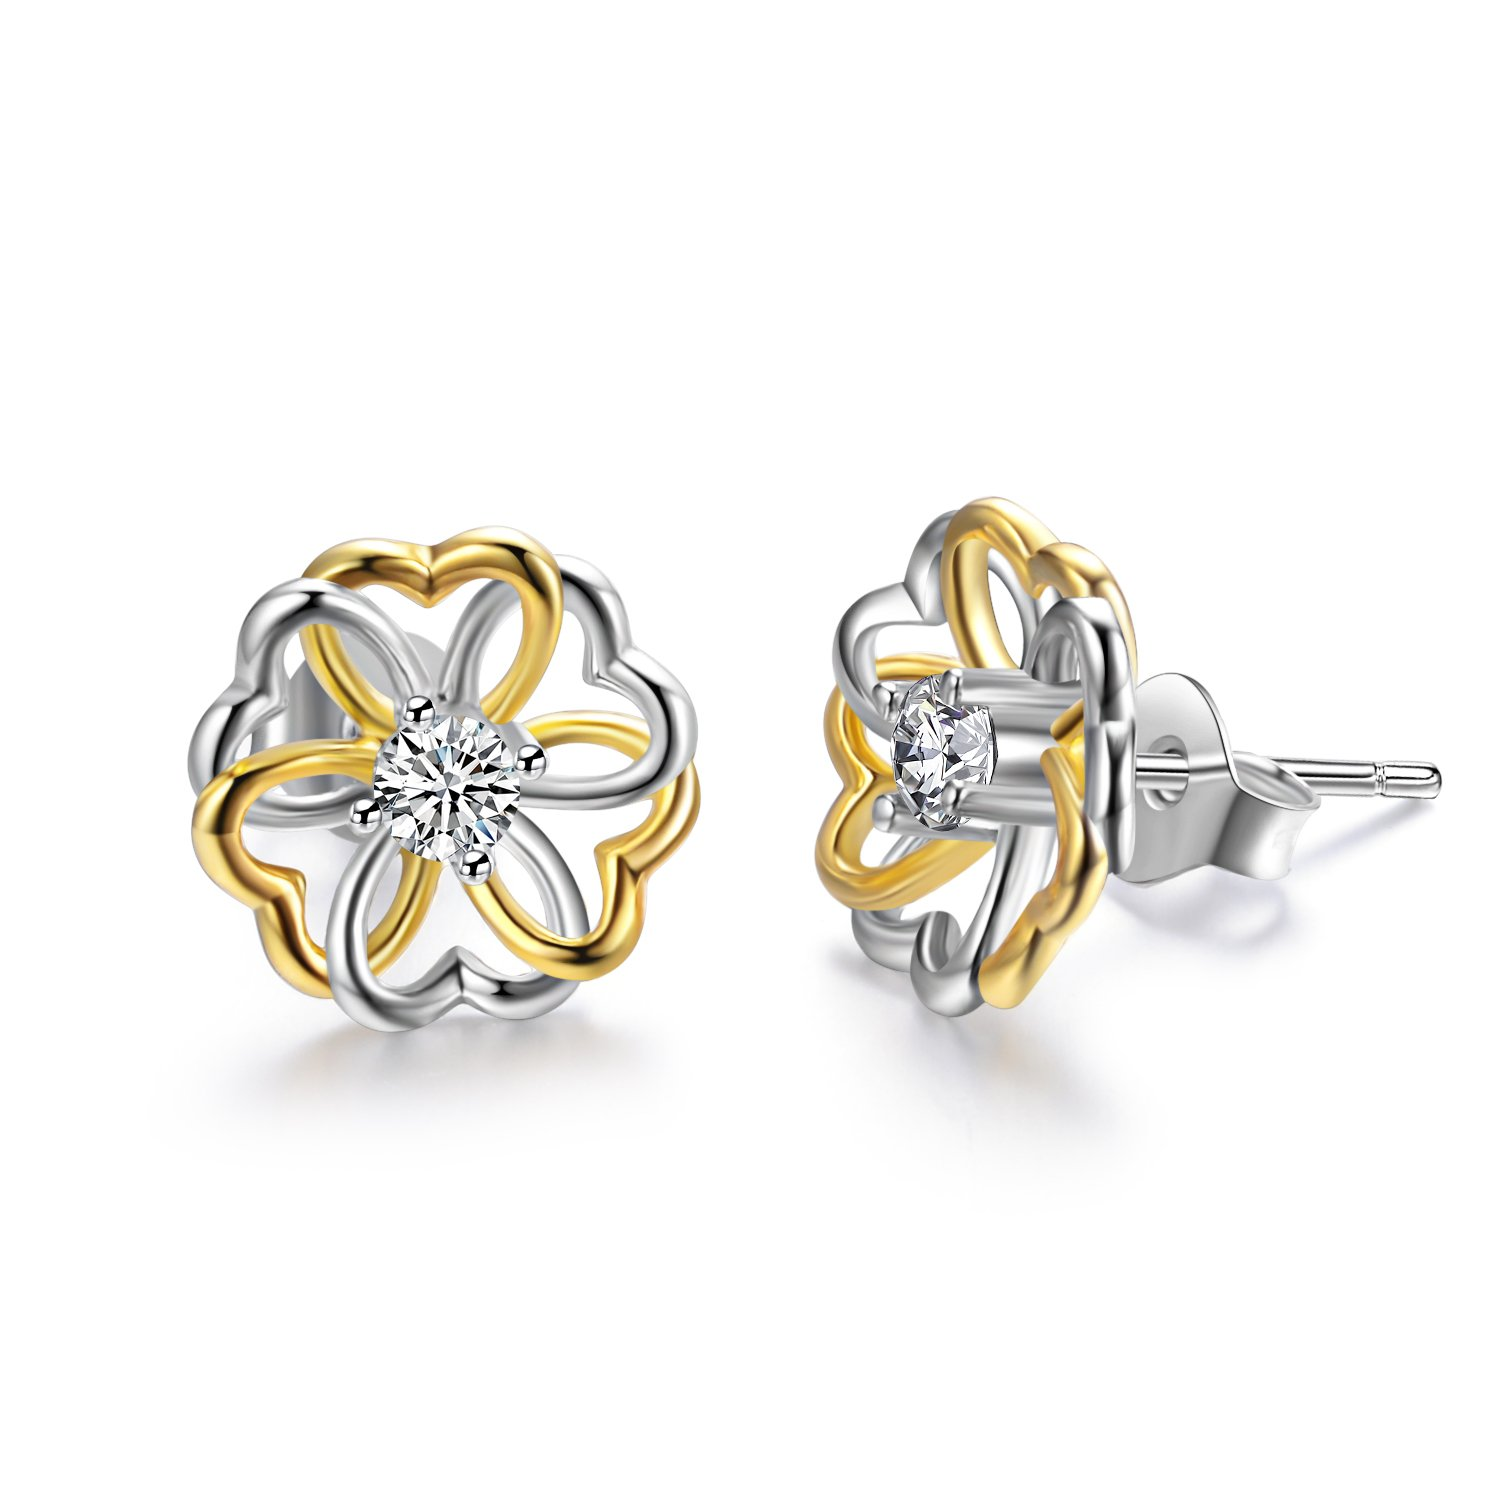 AOBOCO Sterling Silver Stud Earrings for Women, Crystals from Swarovski, My Little Garden of Love and Hope Series, Hypoallergenic Anniversary Birthday Jewelry Gifts for Lovely Ladies